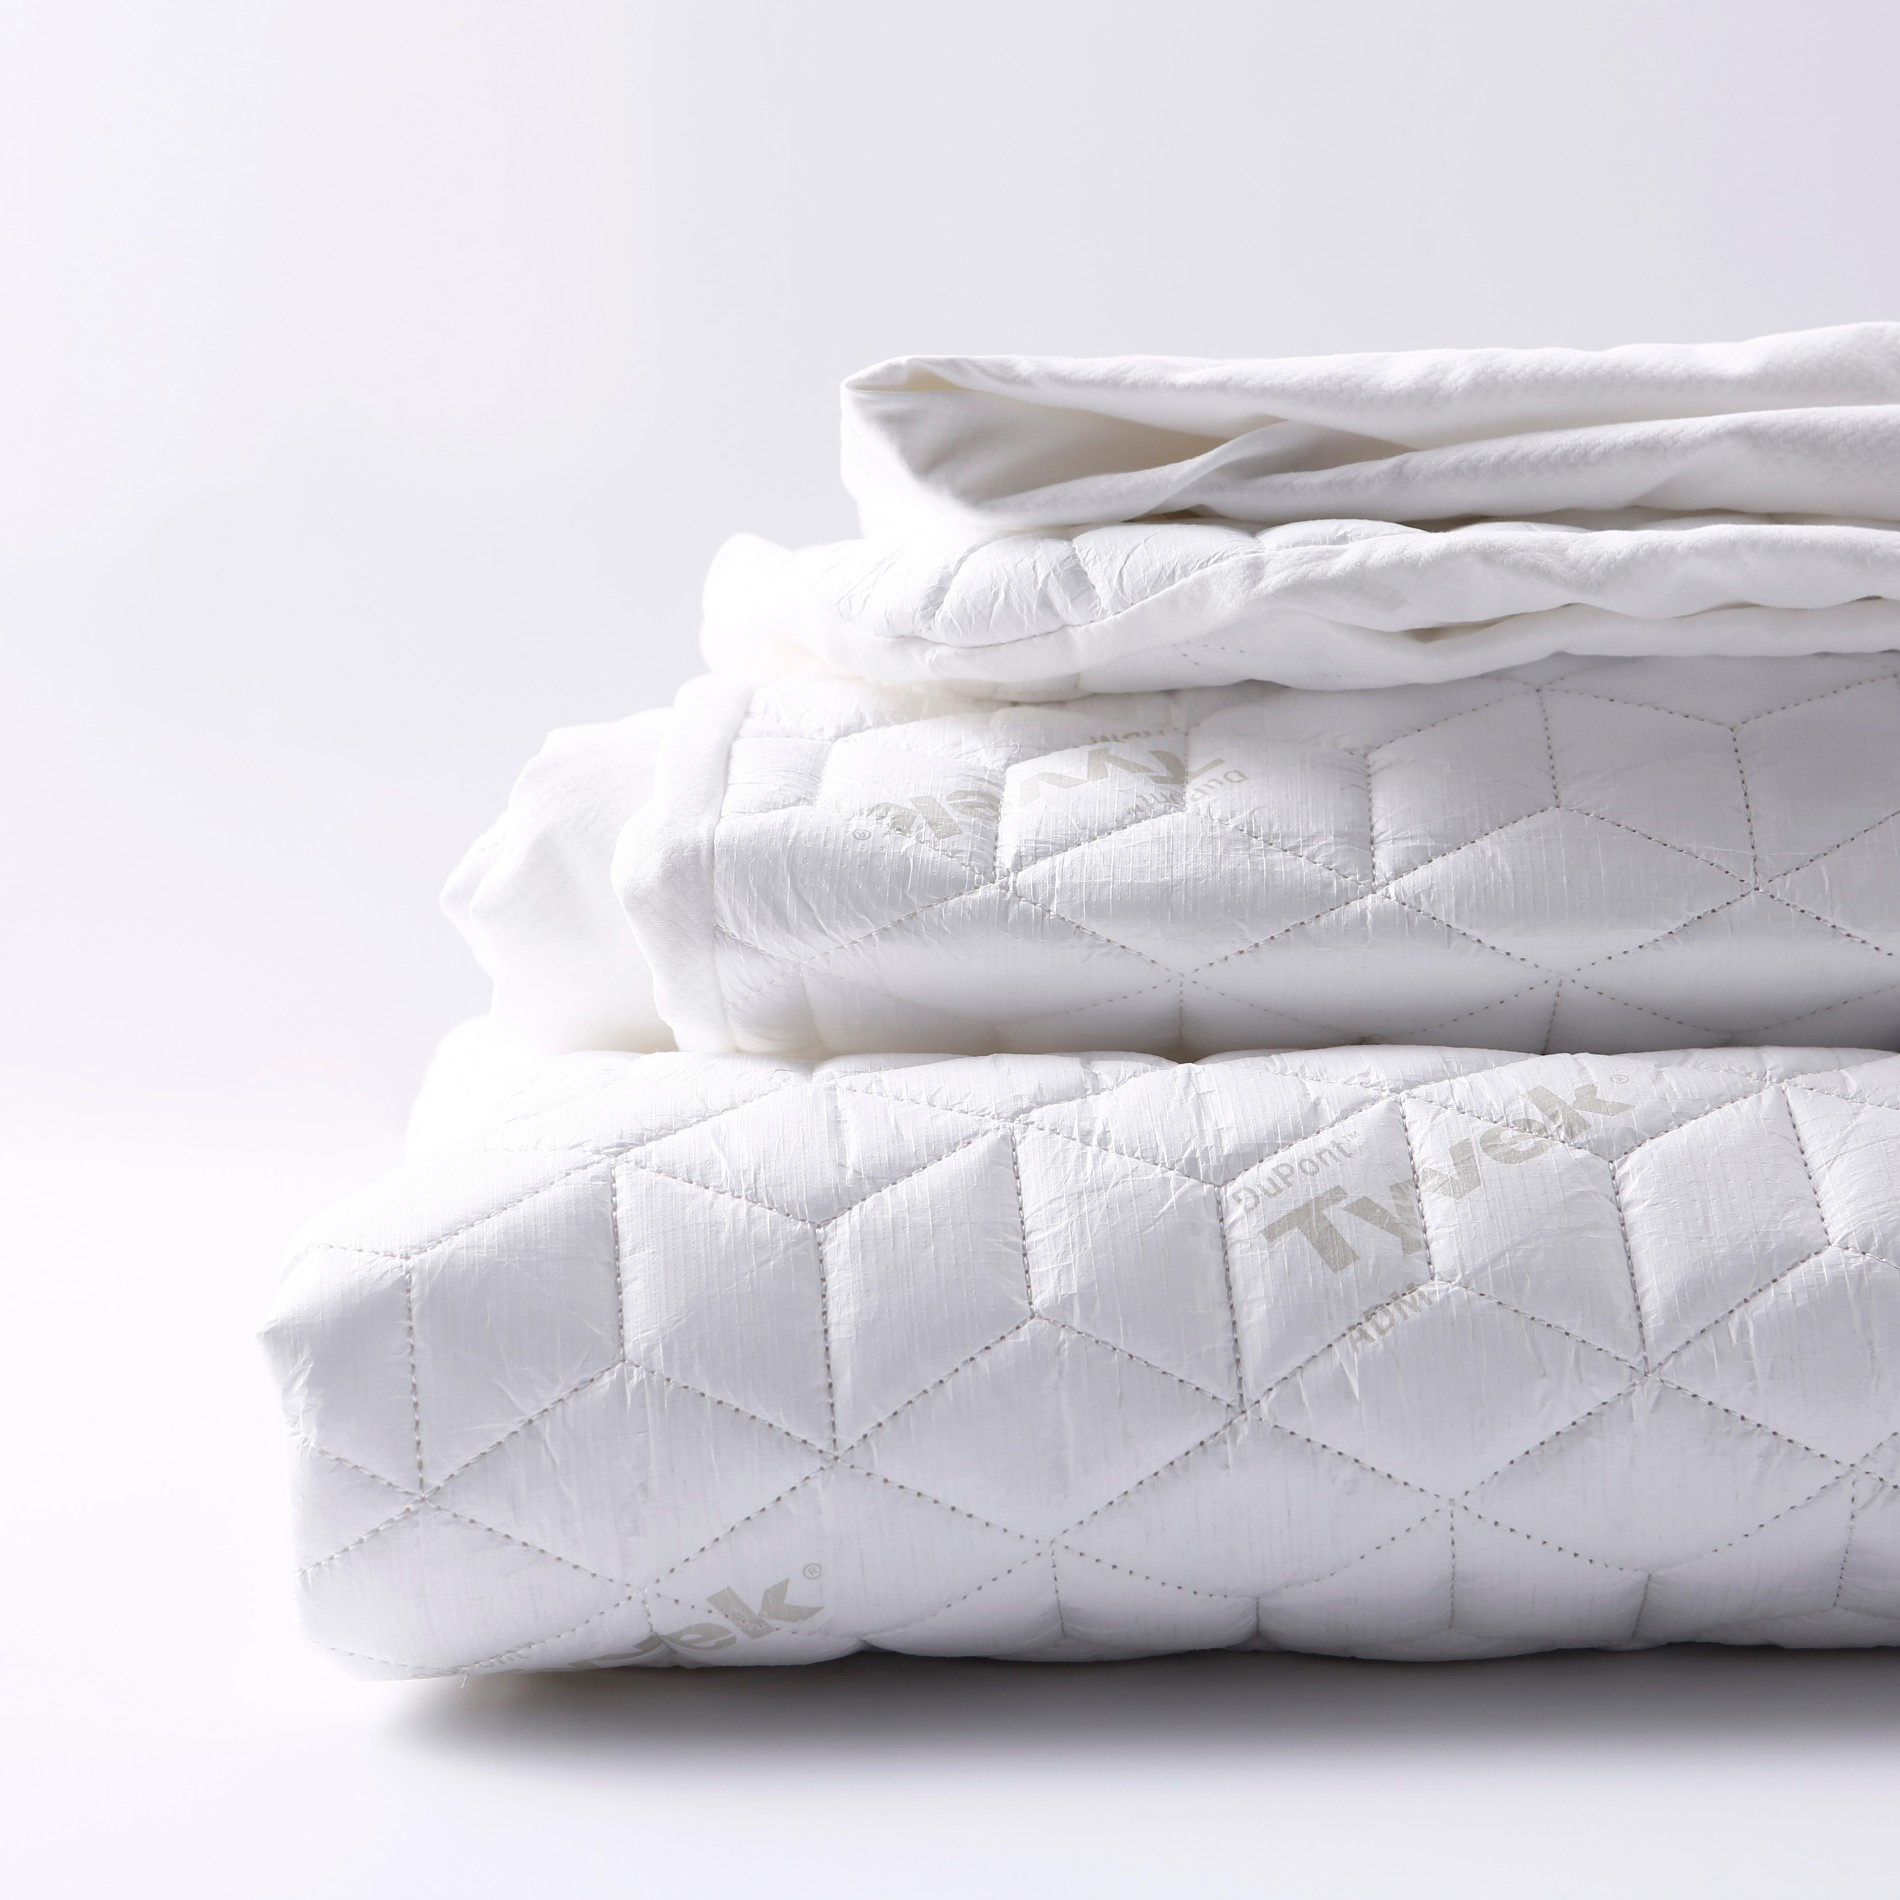 Hotel Mattress Protector Manufacturers, Hotel Mattress Protector Factory, Supply Hotel Mattress Protector